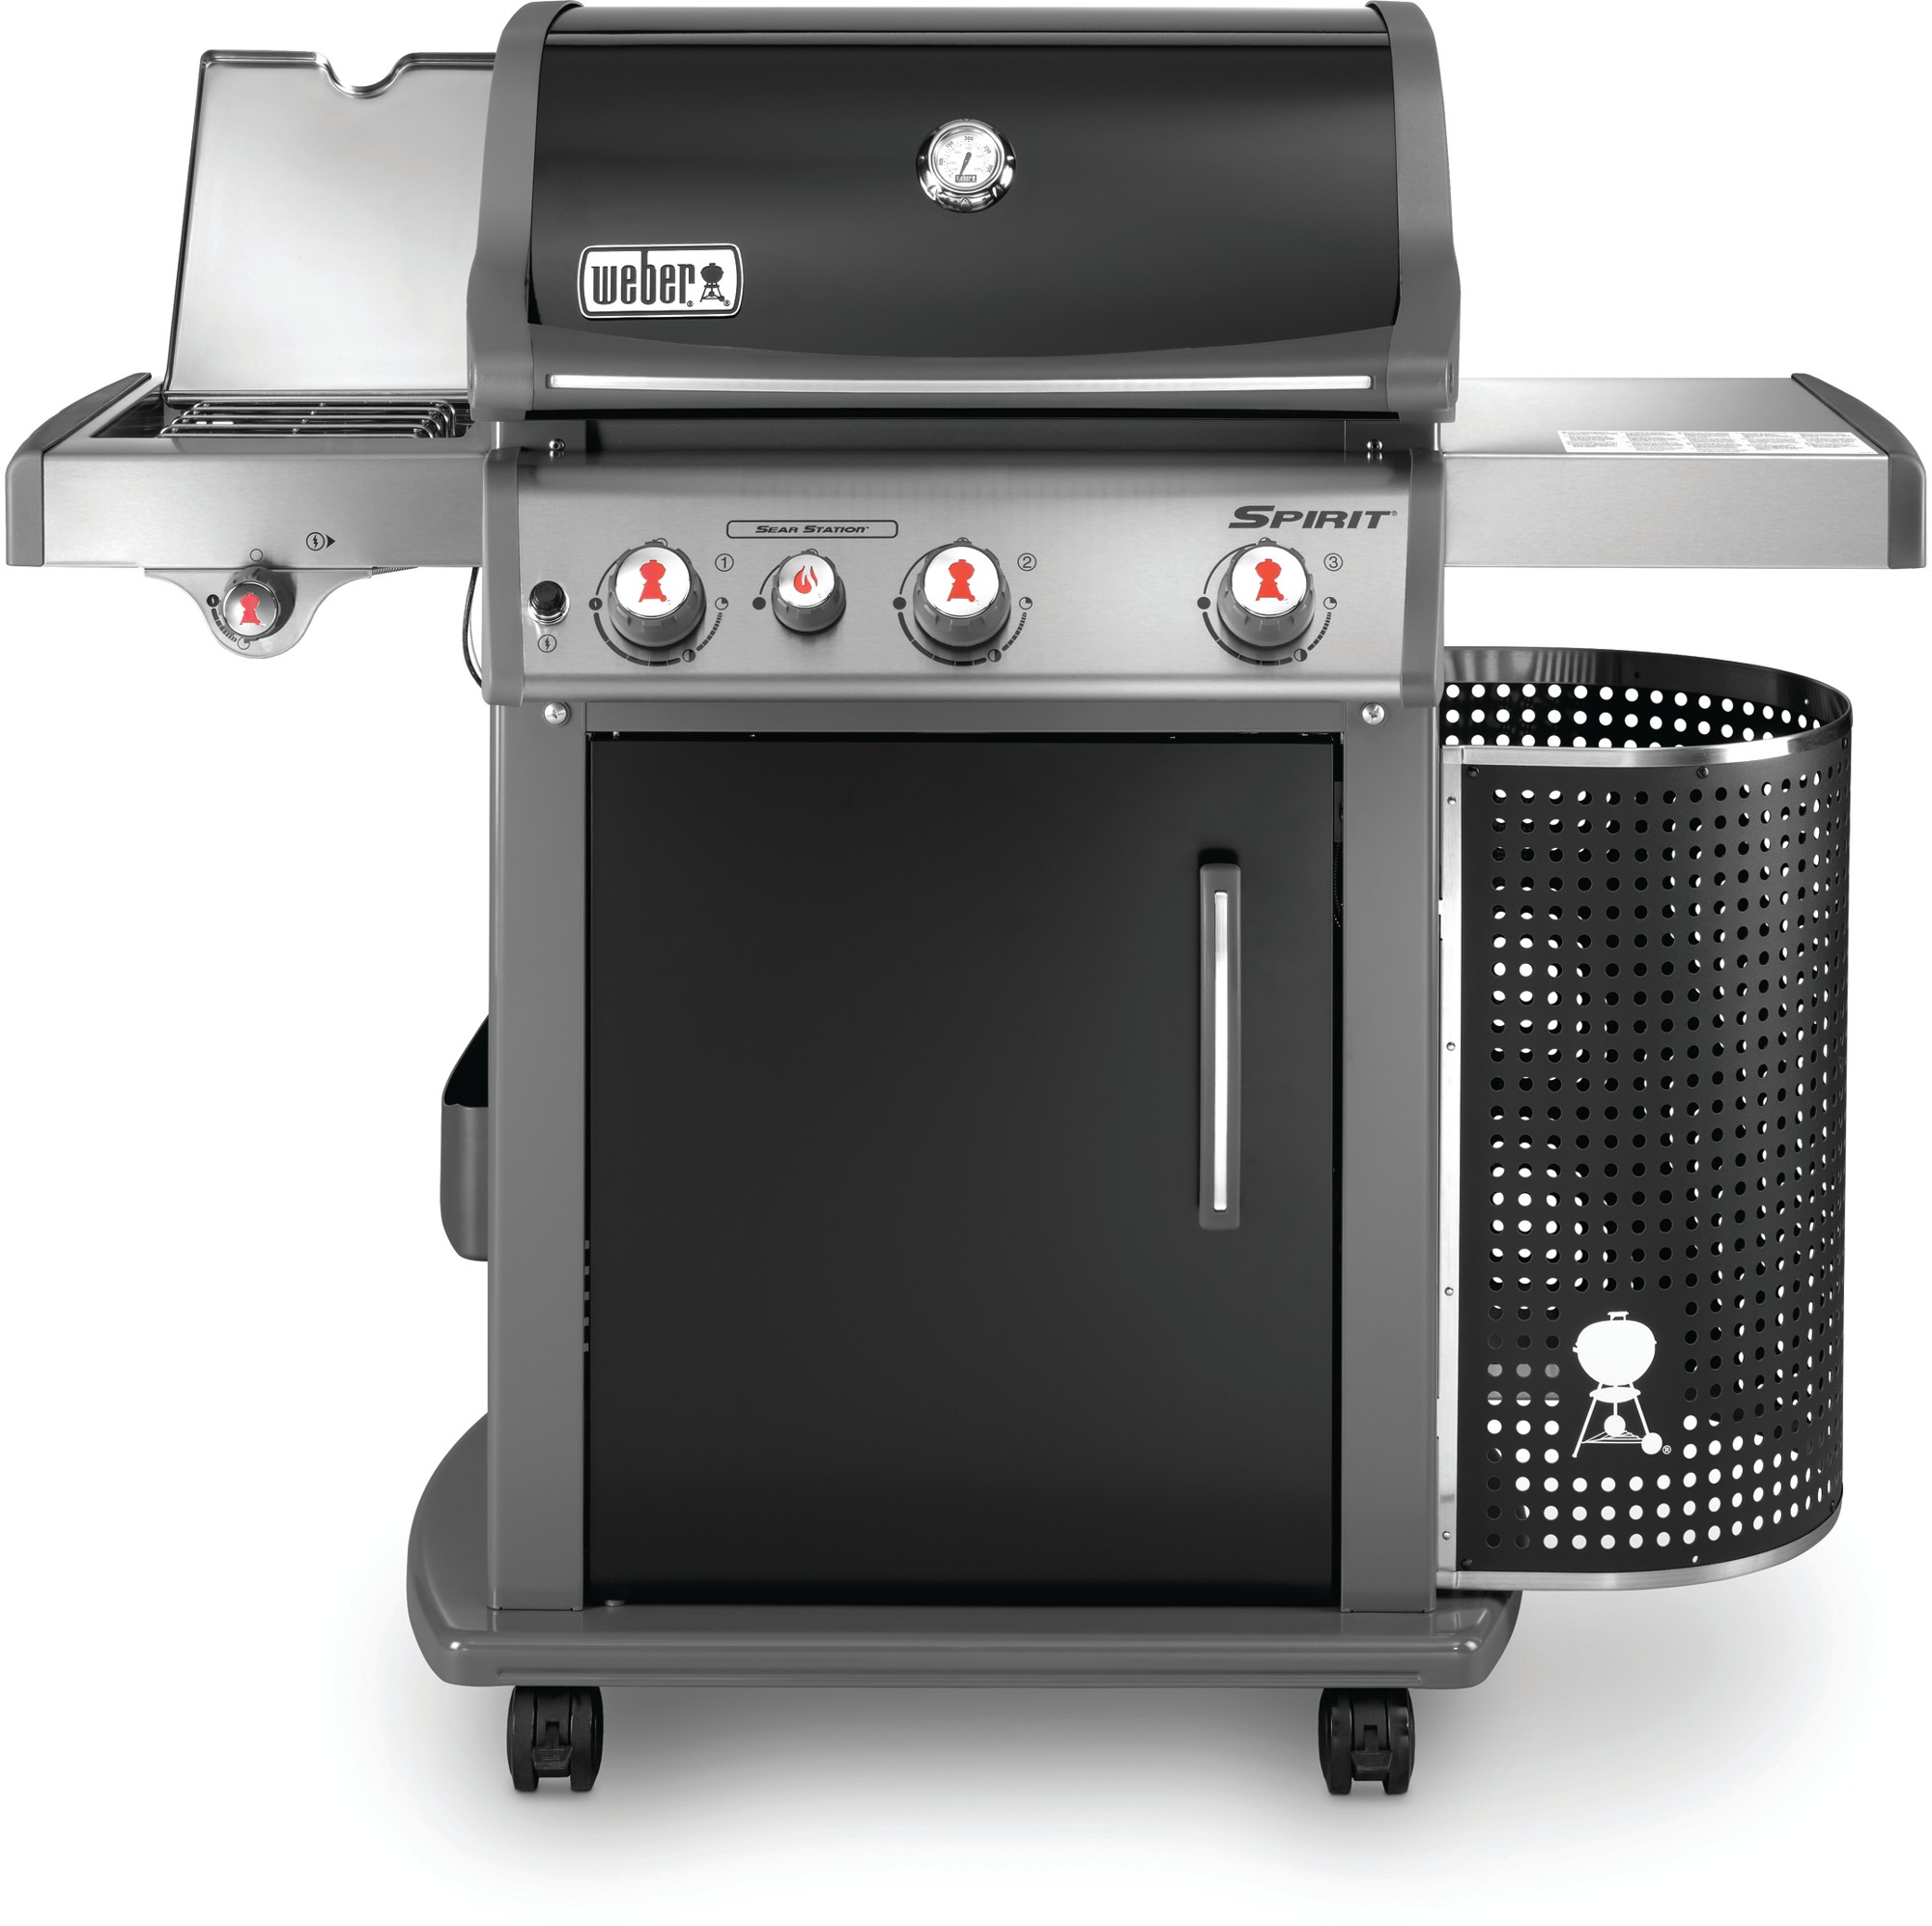 weber spirit grill cover flagrant rotisserie bundle in clifton nurseries performance weber. Black Bedroom Furniture Sets. Home Design Ideas